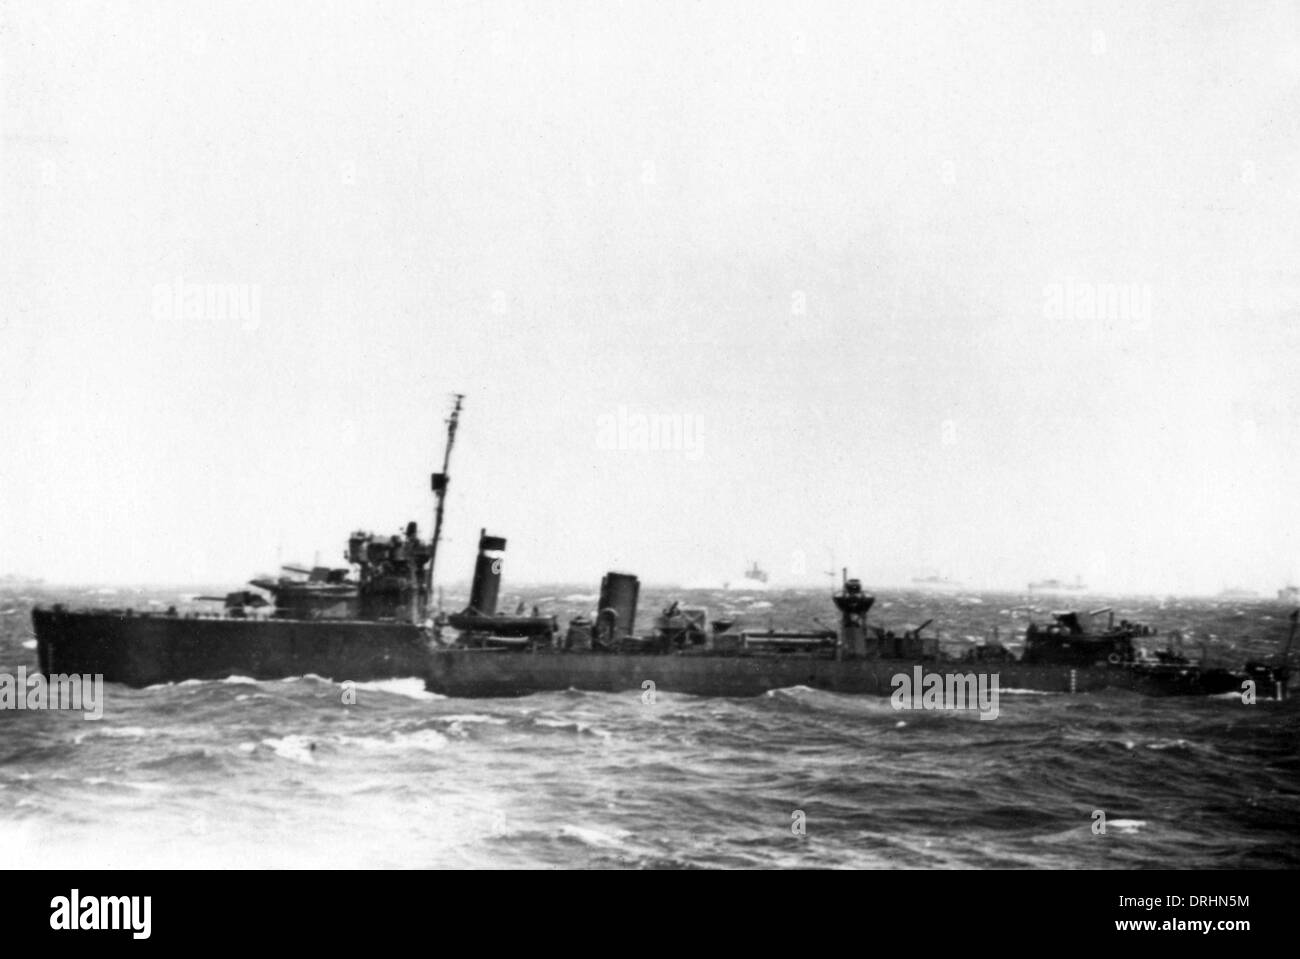 HMS Walker, British destroyer, WW1 and WW2 - Stock Image